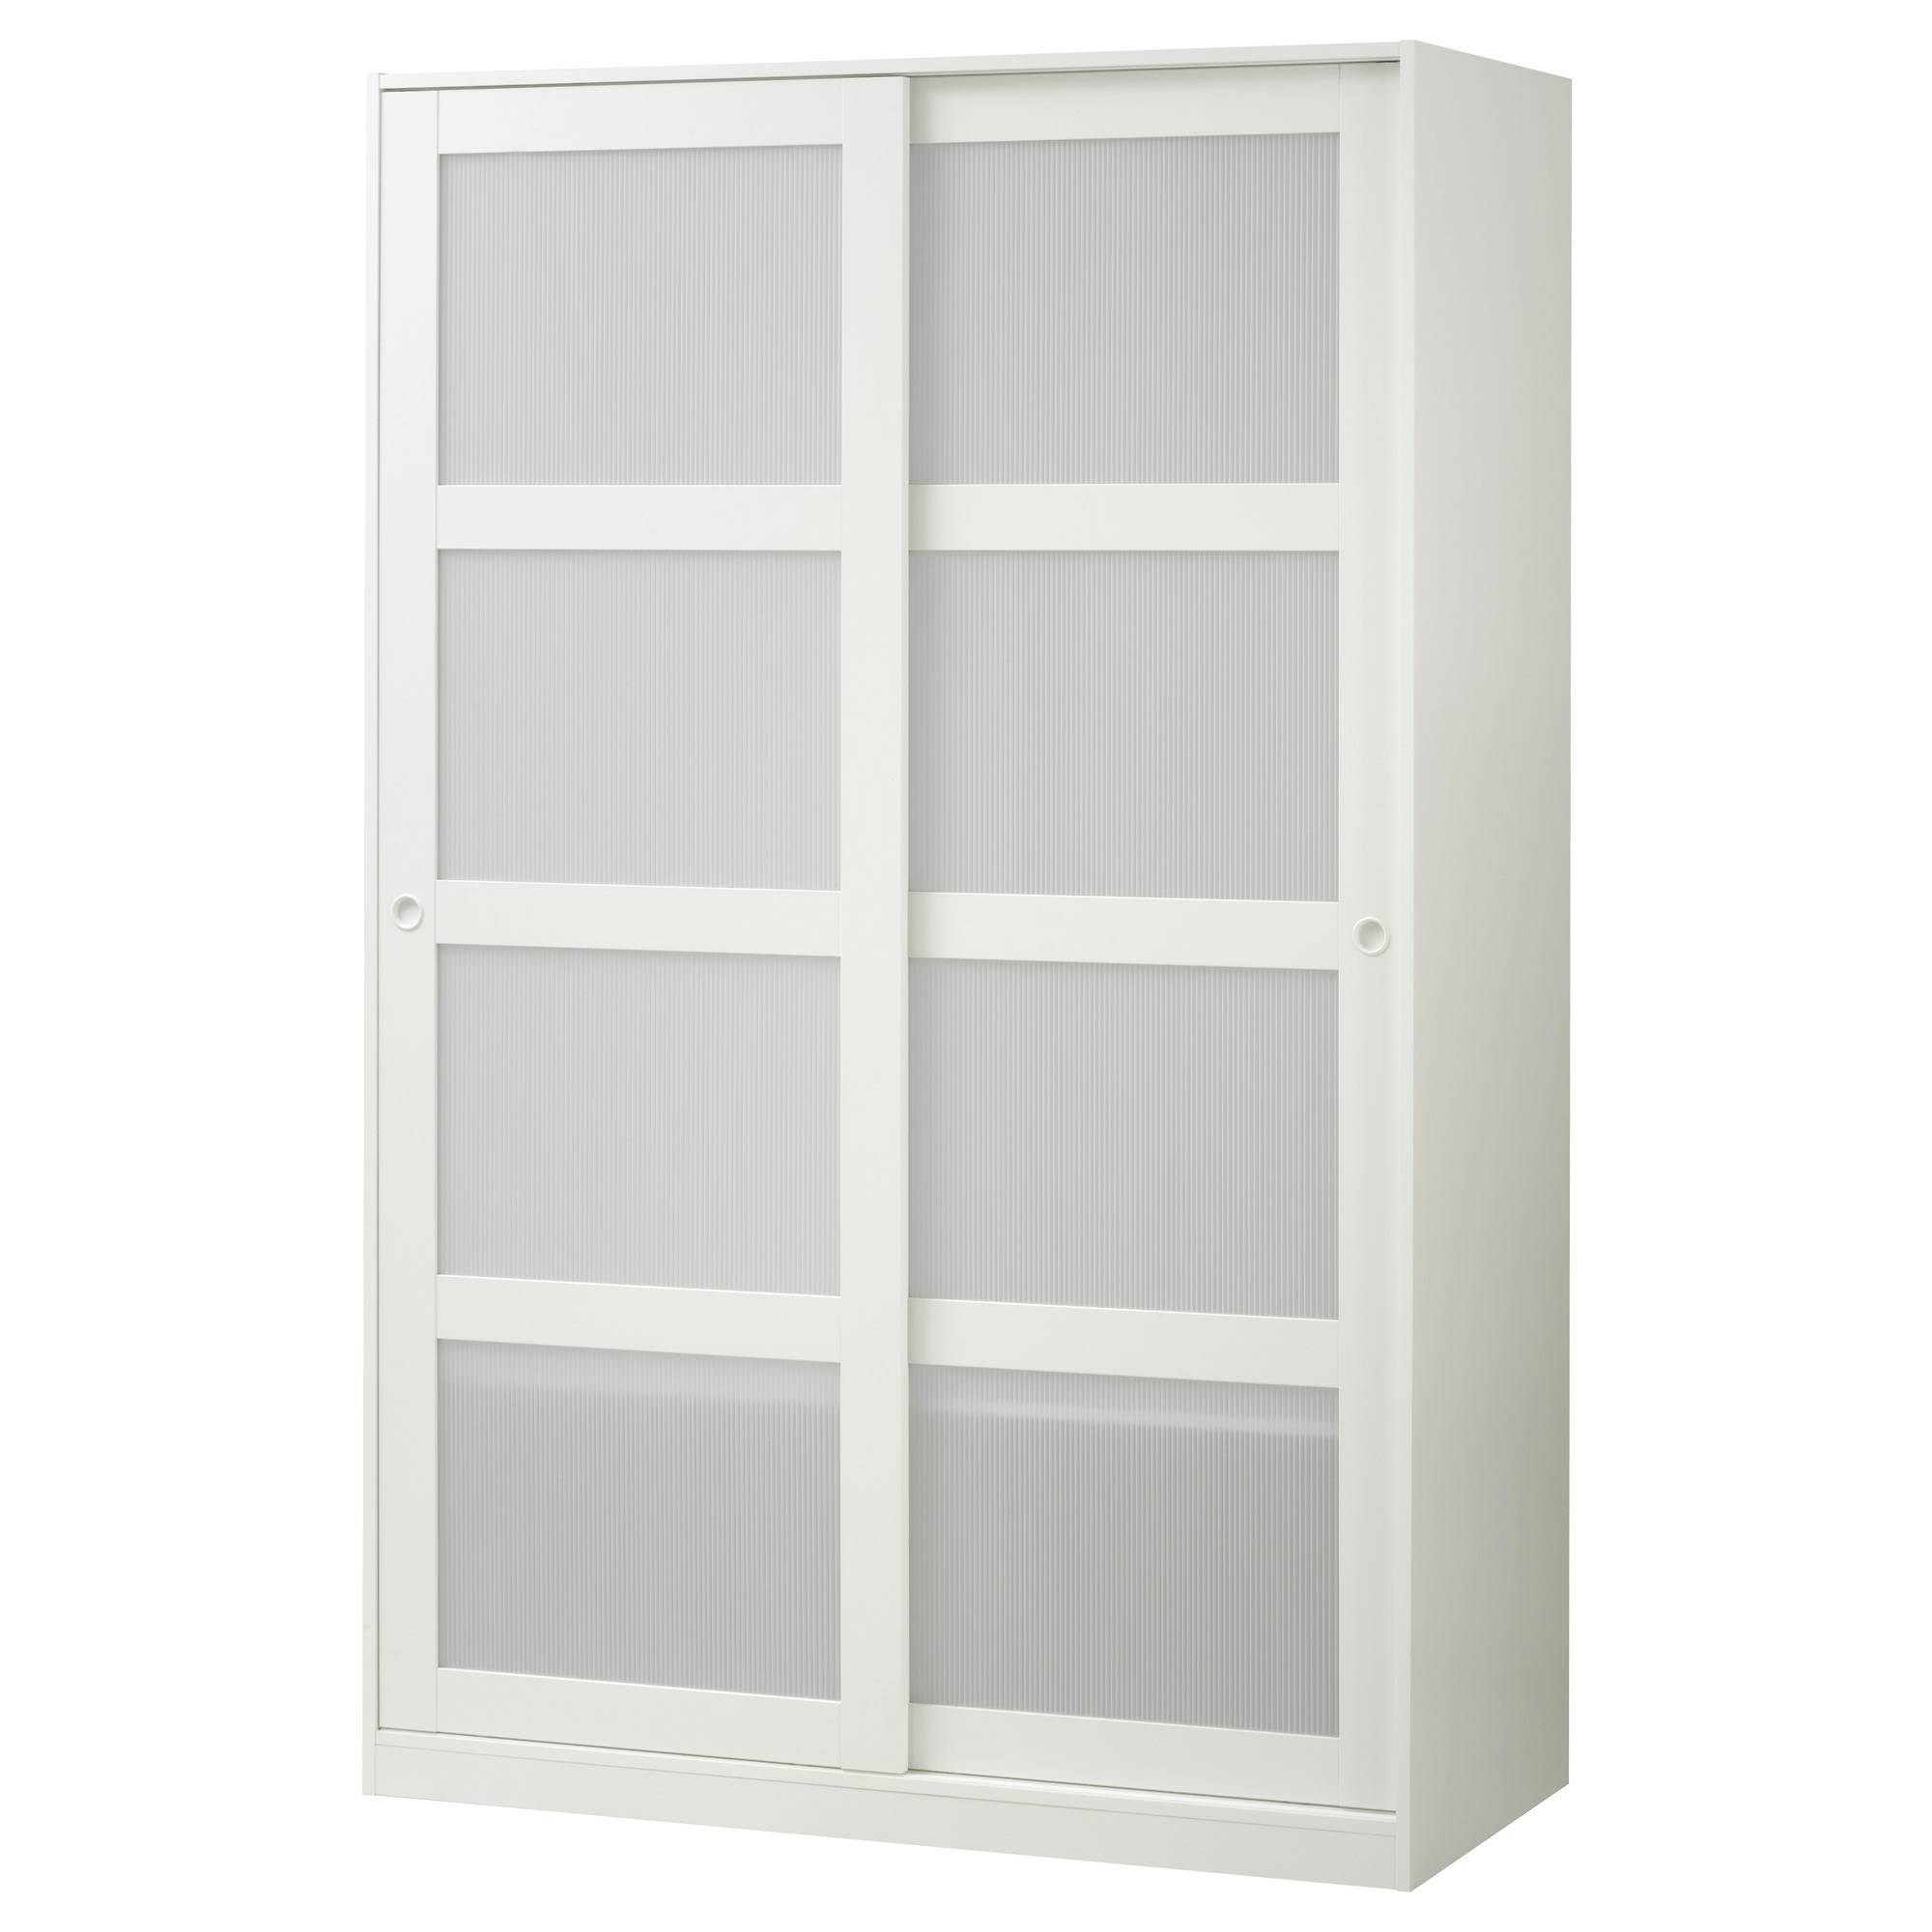 Kvikne Wardrobe With 2 Sliding Doors White 120X190 Cm - Ikea throughout 2 Sliding Door Wardrobes (Image 6 of 15)